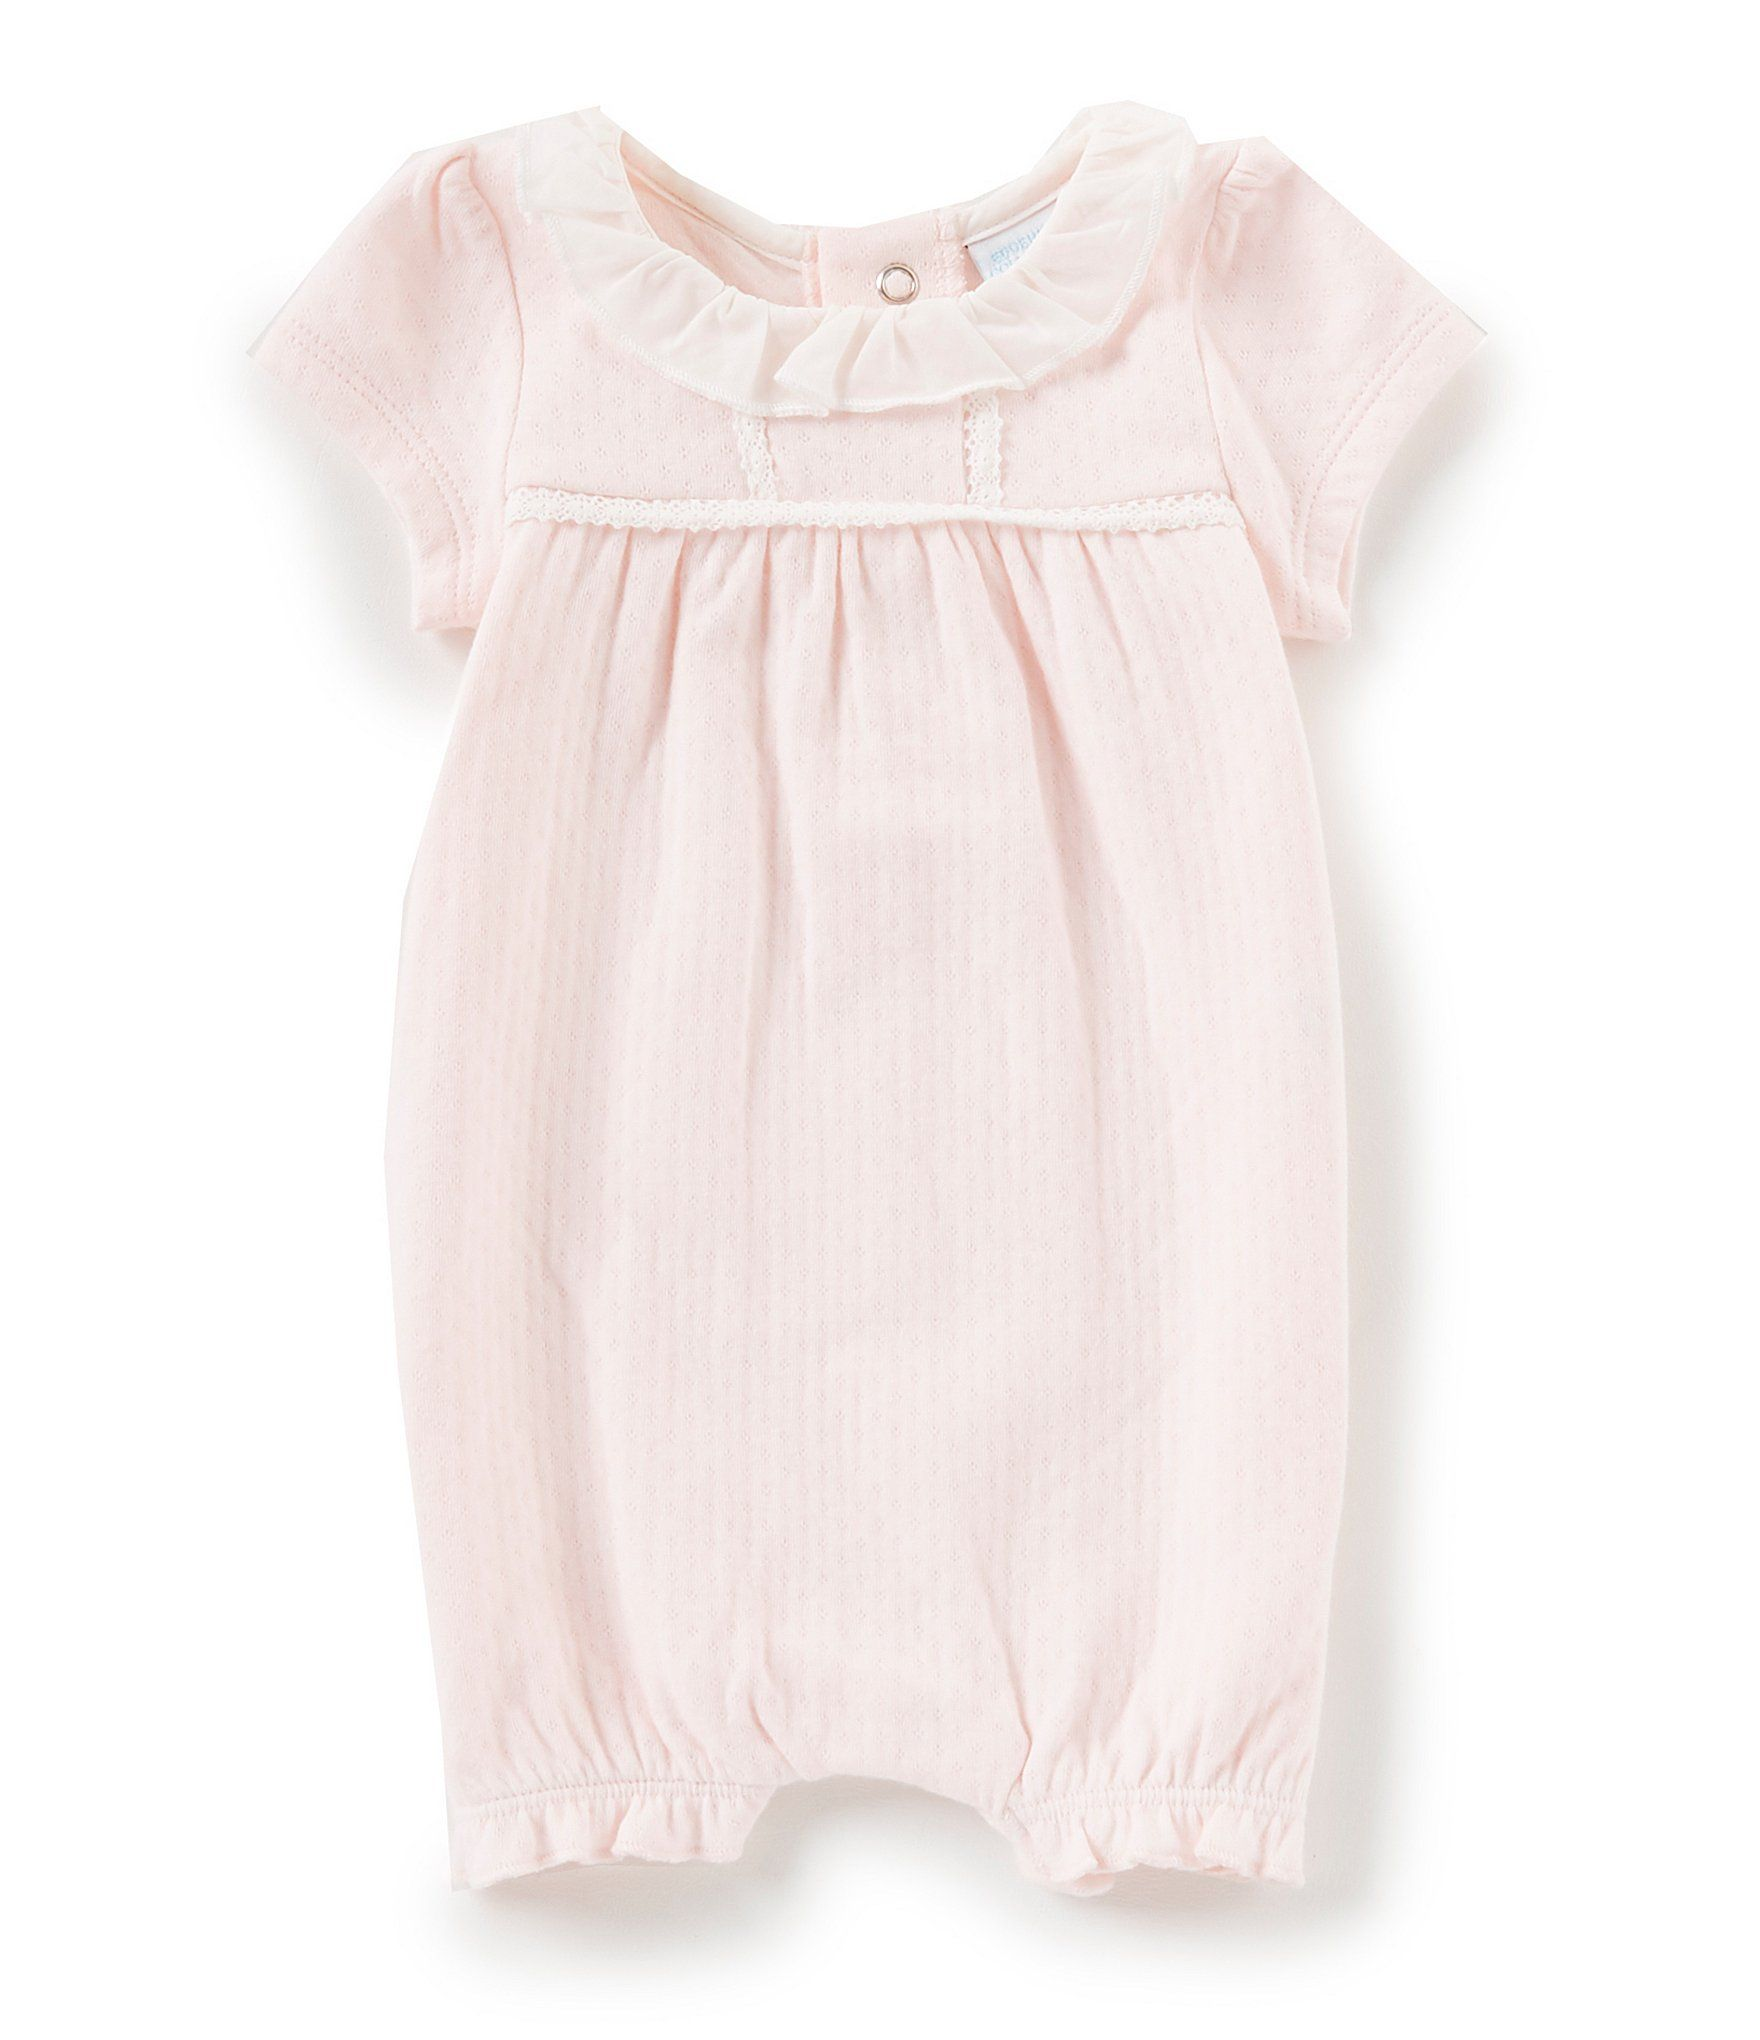 675585272b8 Shop for Edgehill Collection Baby Girls Newborn-6 Months Quilted Romper at  Dillards.com. Visit Dillards.com to find clothing, accessories, shoes, ...